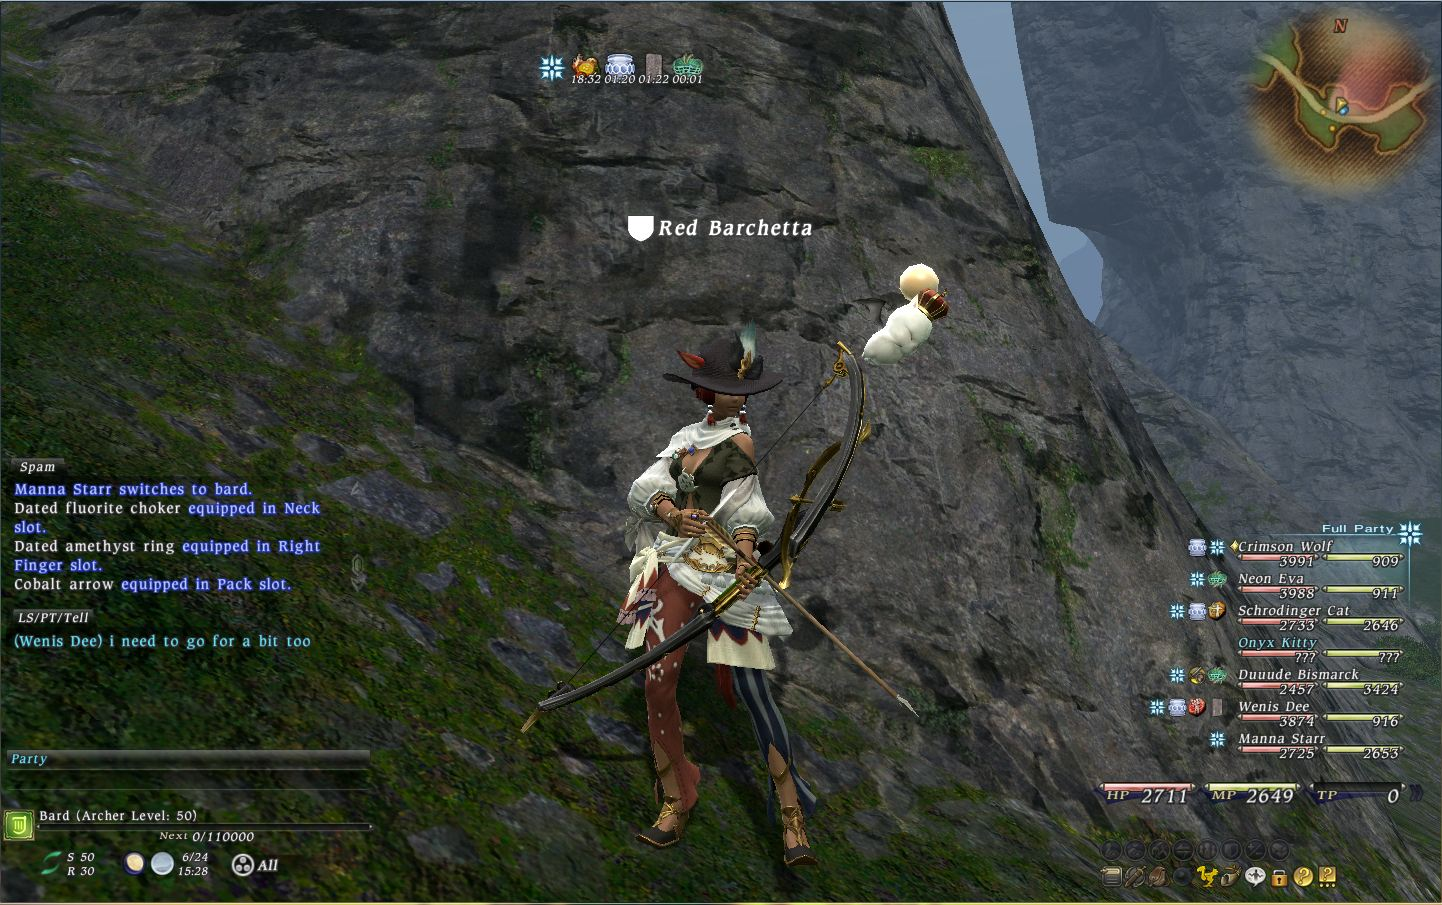 ddz ffxiv with server people that made group haha wasnt just yeah didnt funny enemies exping sees destined forever period pitdominionvalley make also awkward when this moment someone thinking know current same merge think played rival comprised youre groups have would stay gonna mostly salvation from koshii once forget shell orange